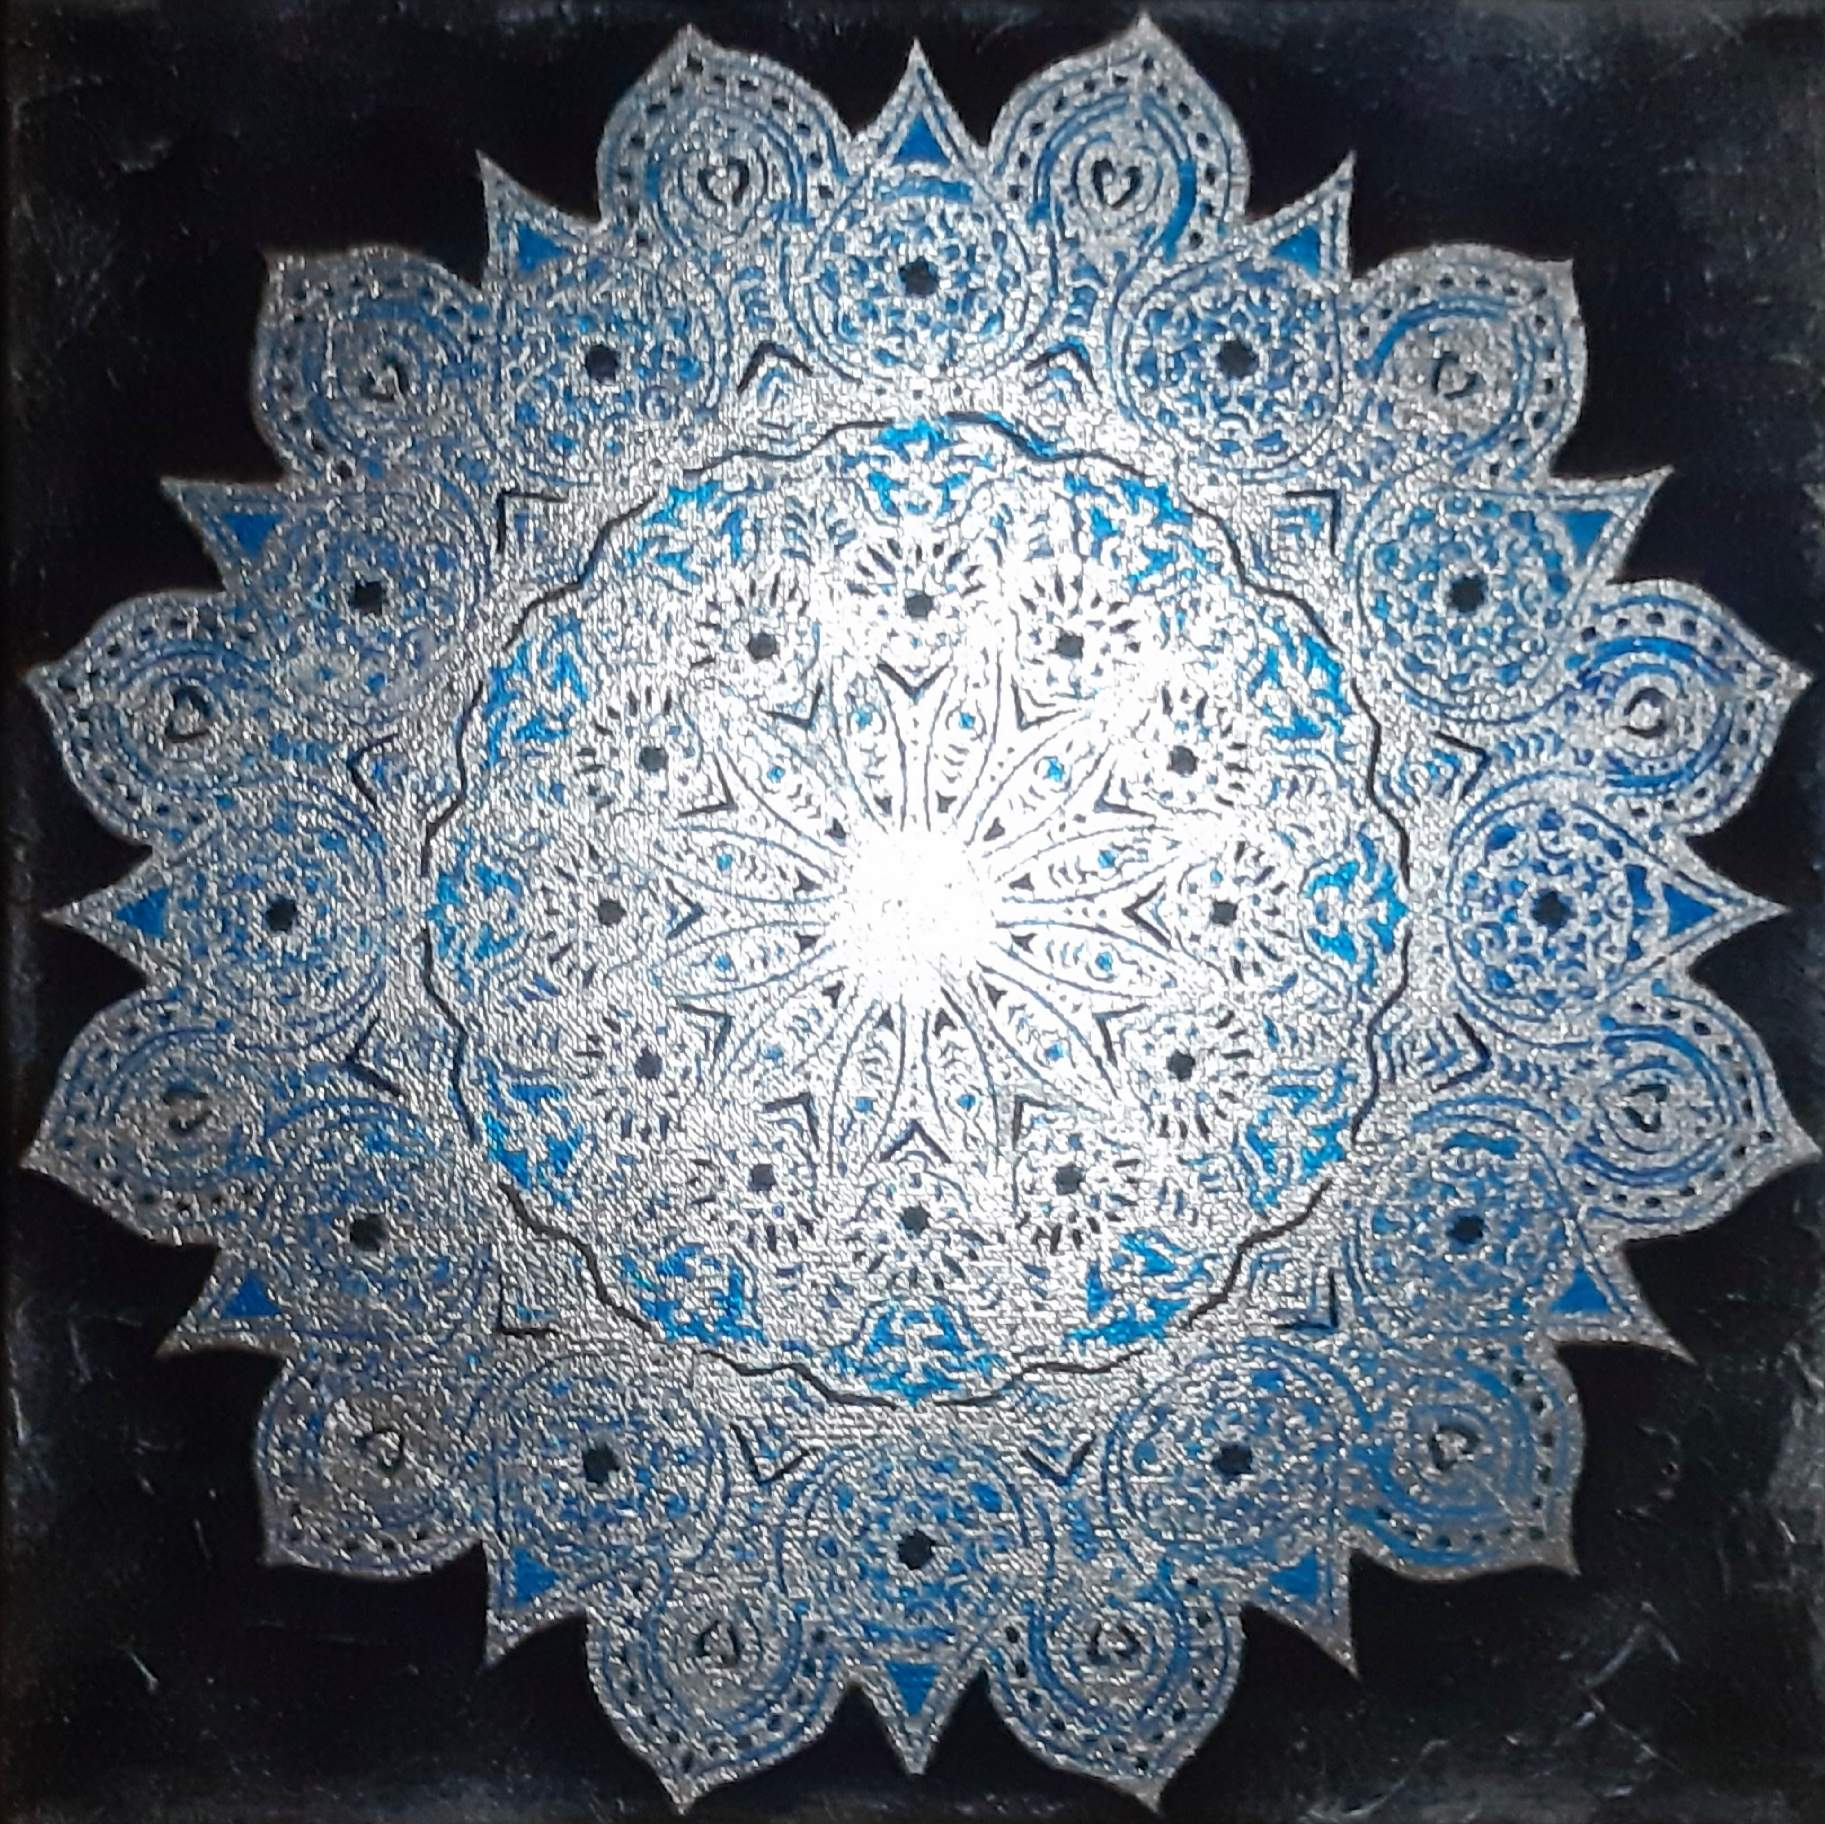 Mandala - mixed media on canvas- cm 30x30